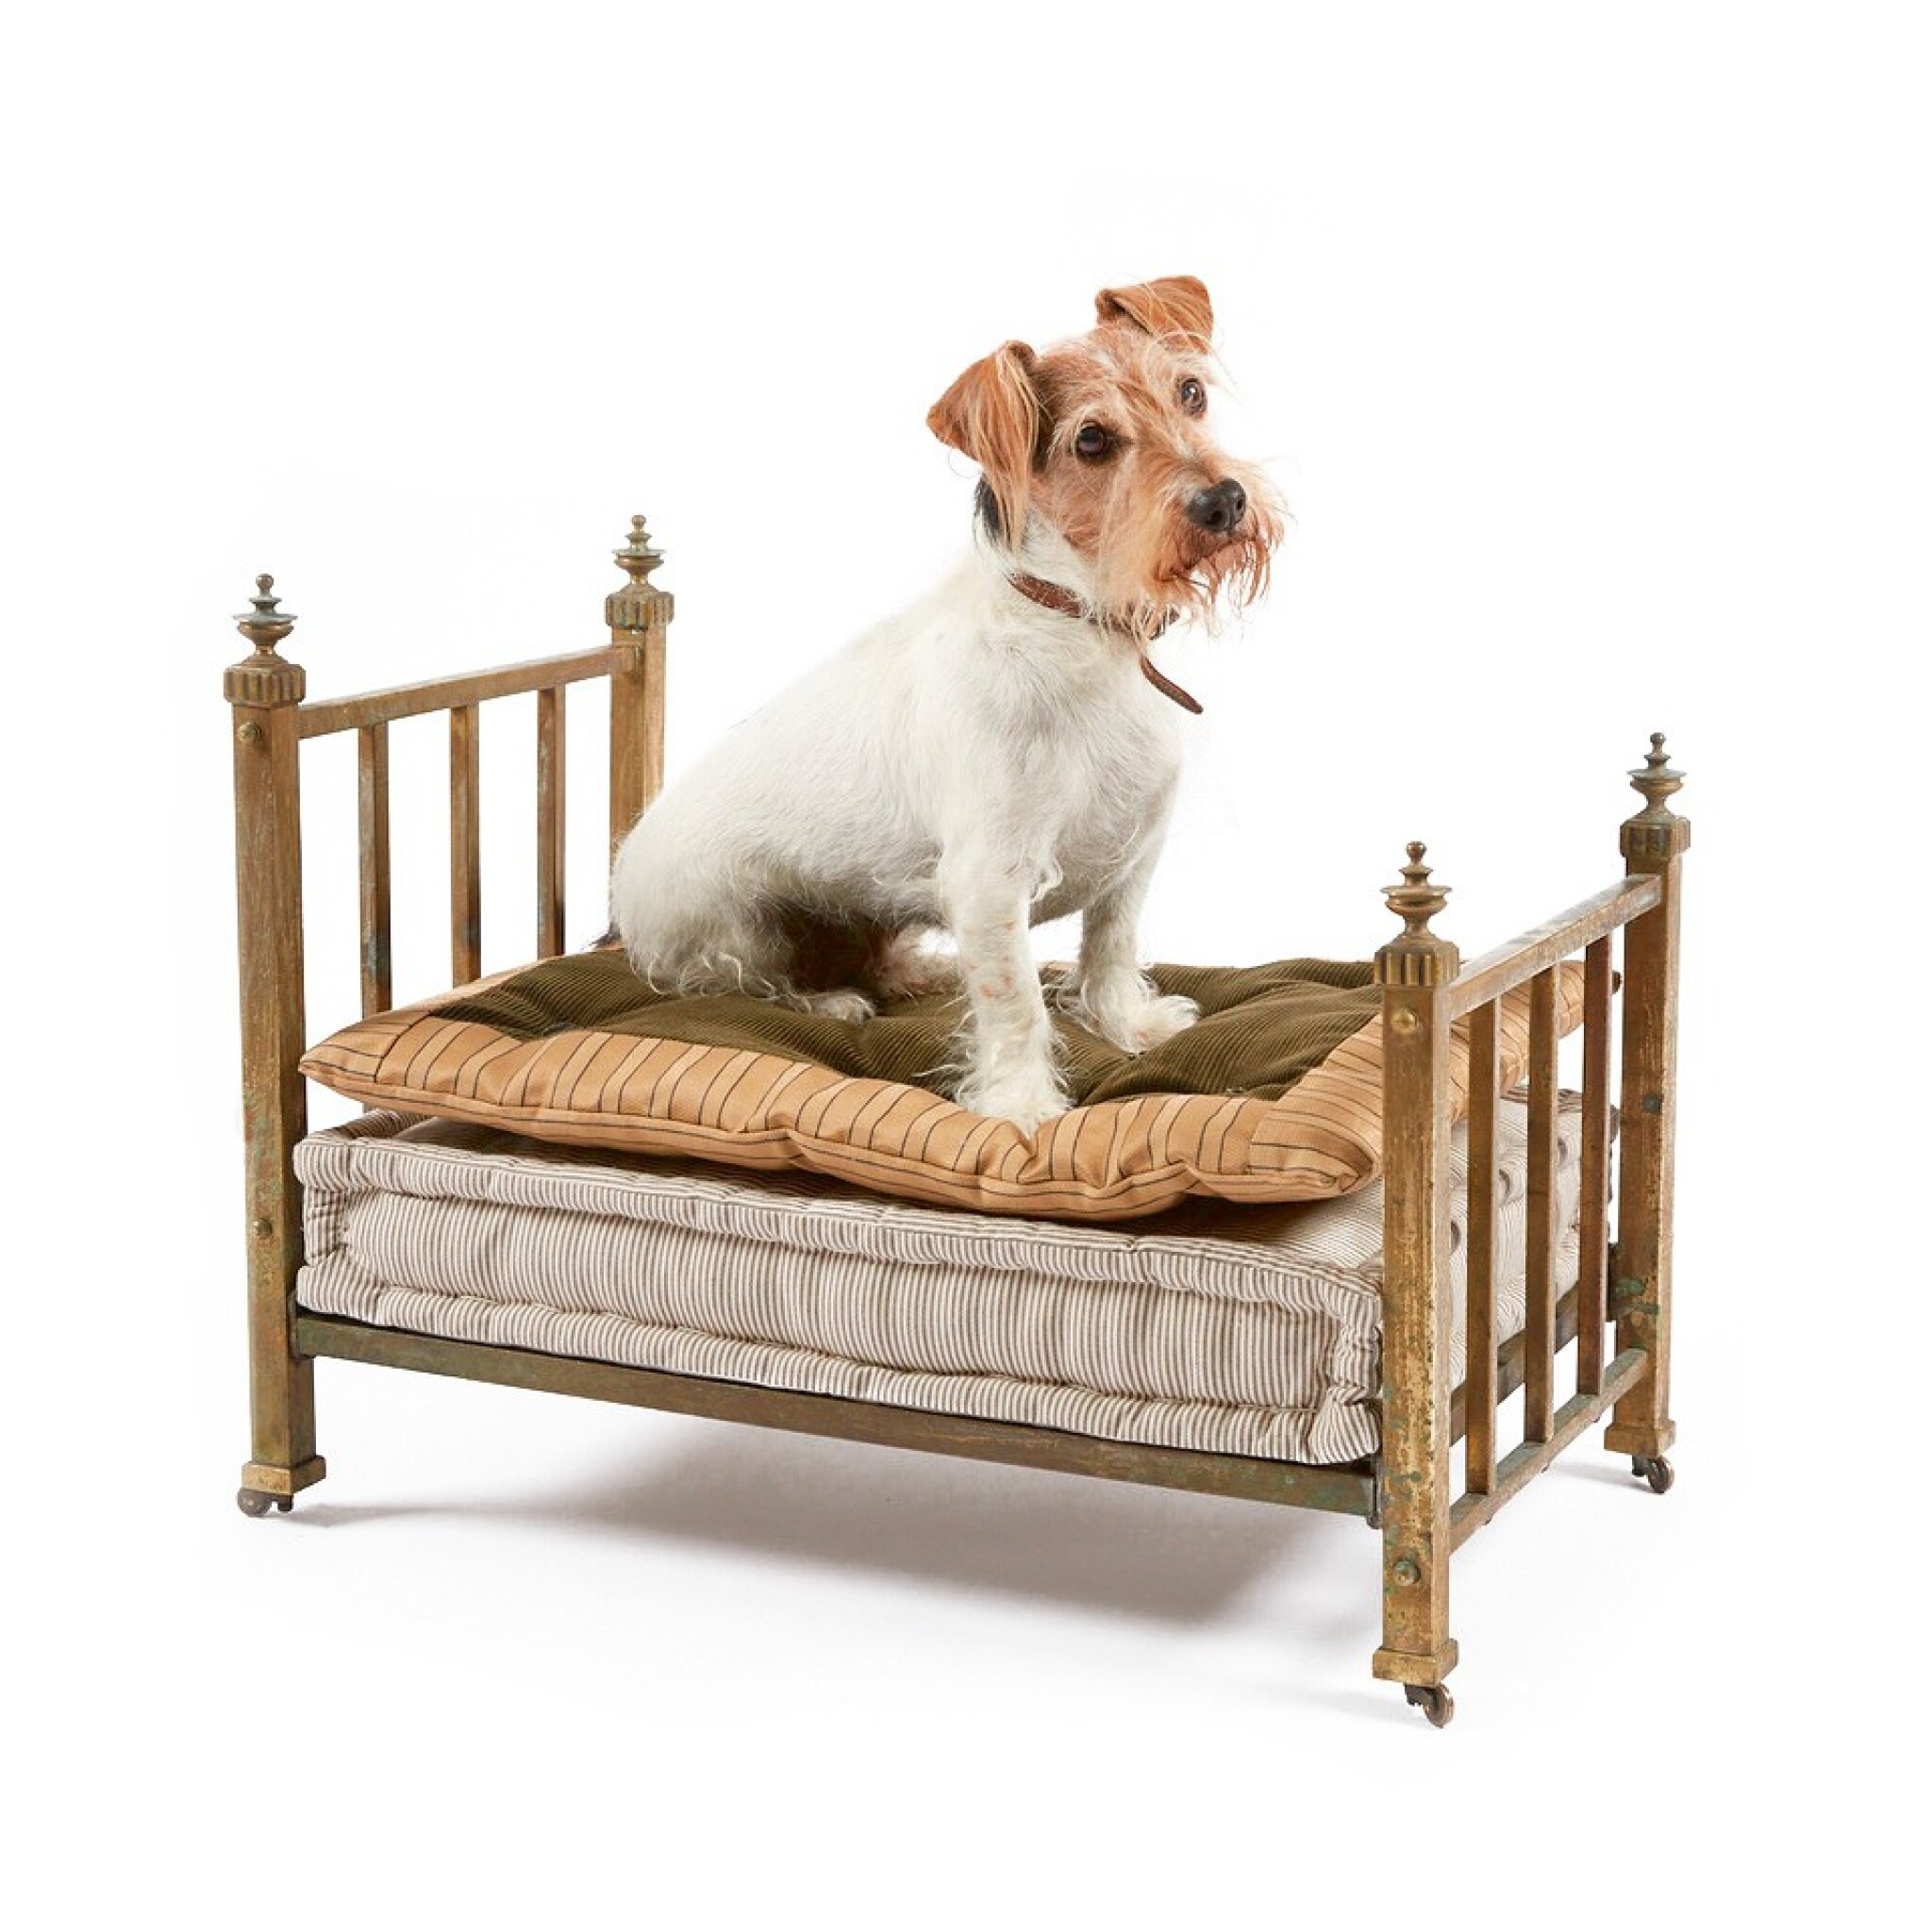 View full screen - View 1 of Lot 4. A VICTORIAN BRASS 'DOG BED', LATE 19TH /EARLY 20TH CENTURY.